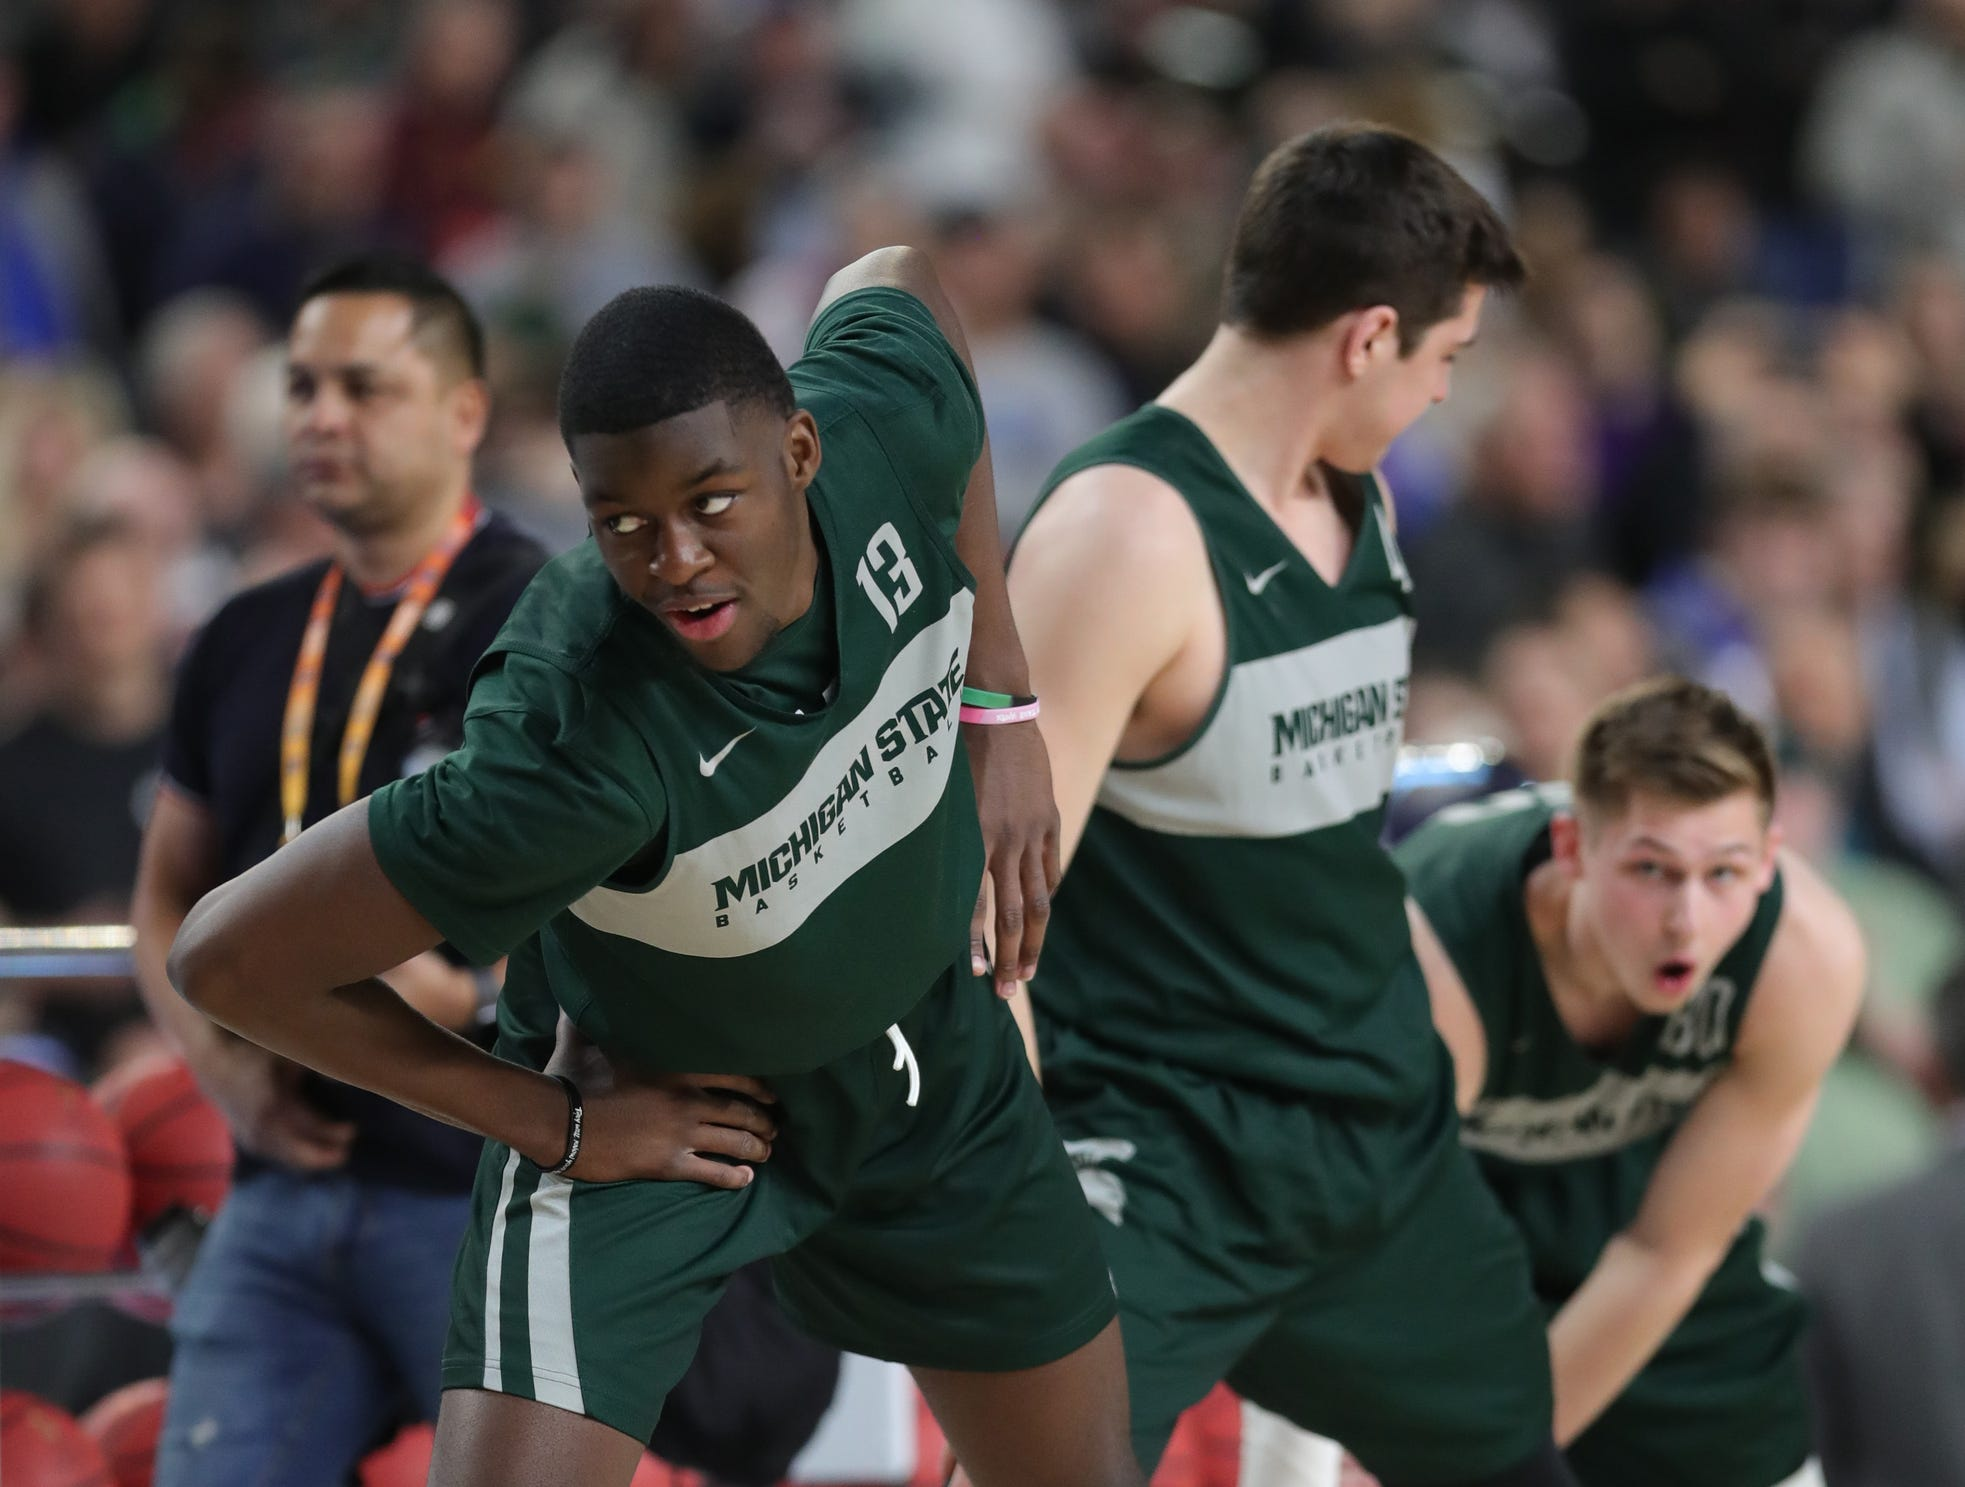 Michigan State forward Gabe Brown goes through drill during practice for their NCAA Semifinal game against Texas Tech Friday, April 5, 2019 at  US Bank Stadium in Minneapolis, Minn.